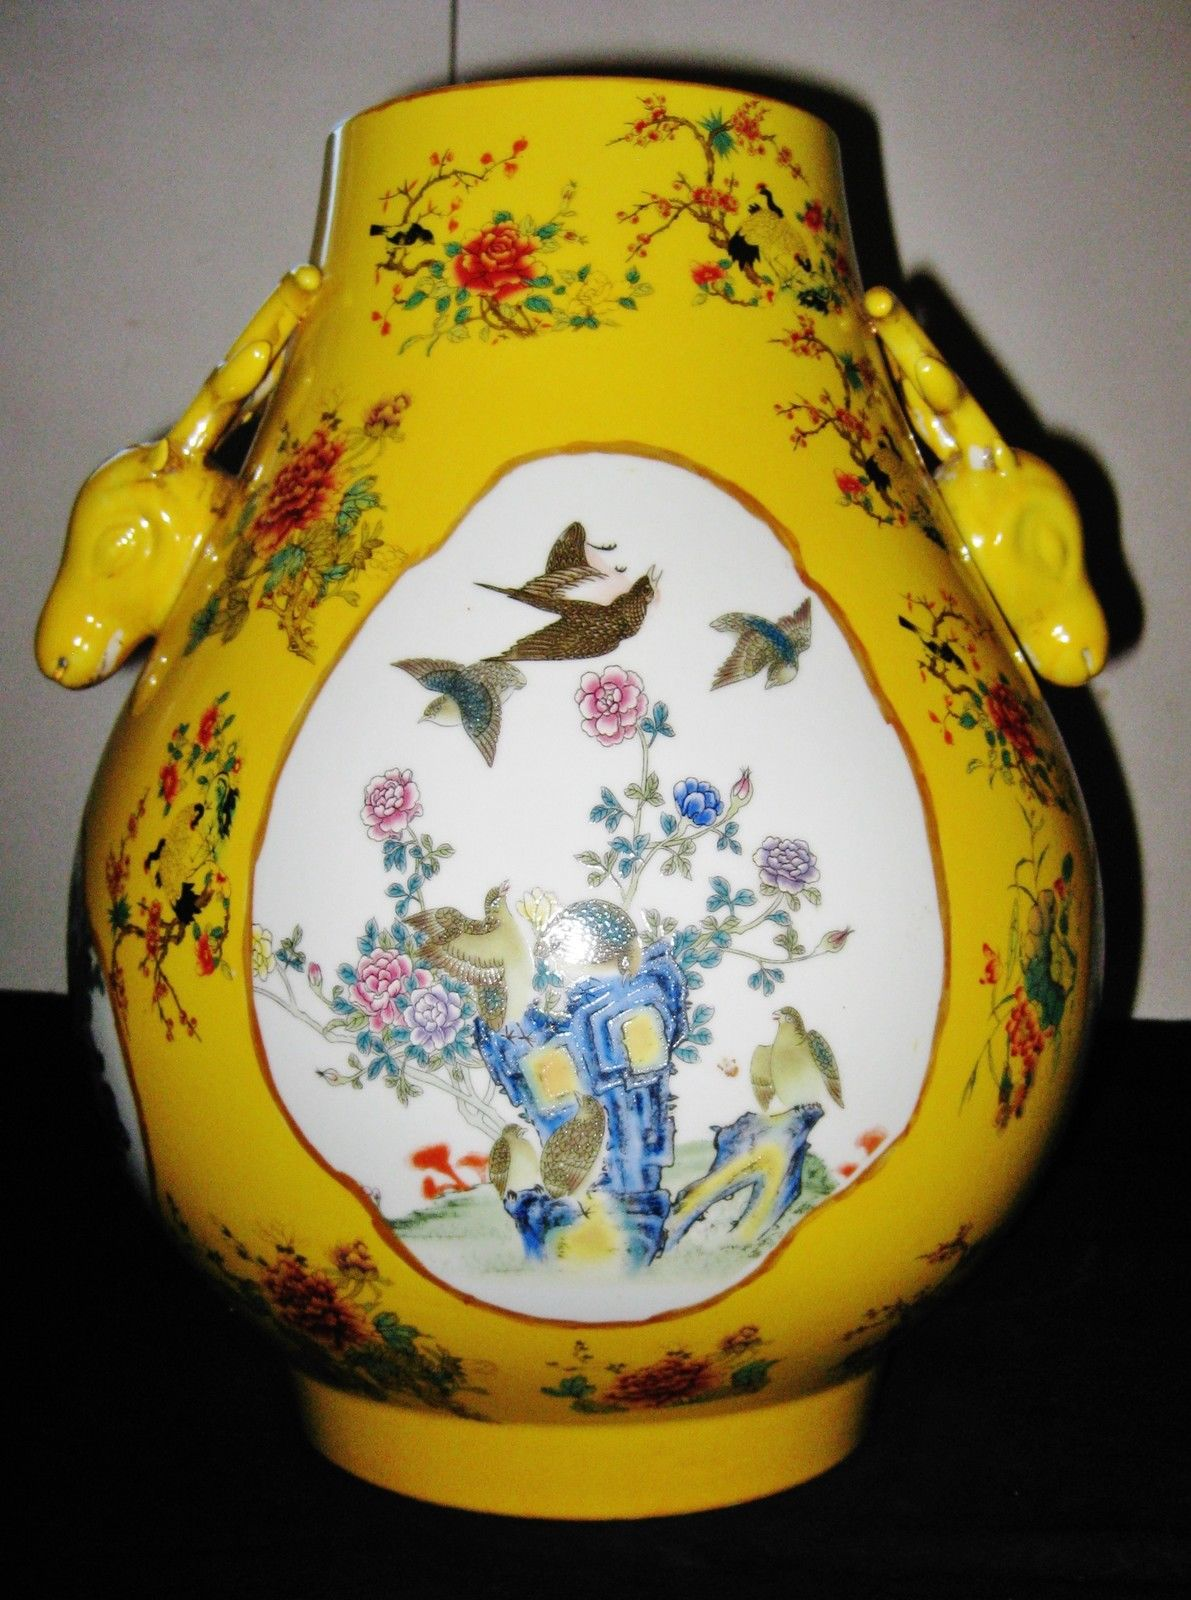 ANTIQUE CHINESE PORCELAIN FLOWER BIRD VASE WITH TWO DEAR HEADS,19TH CENTURY.